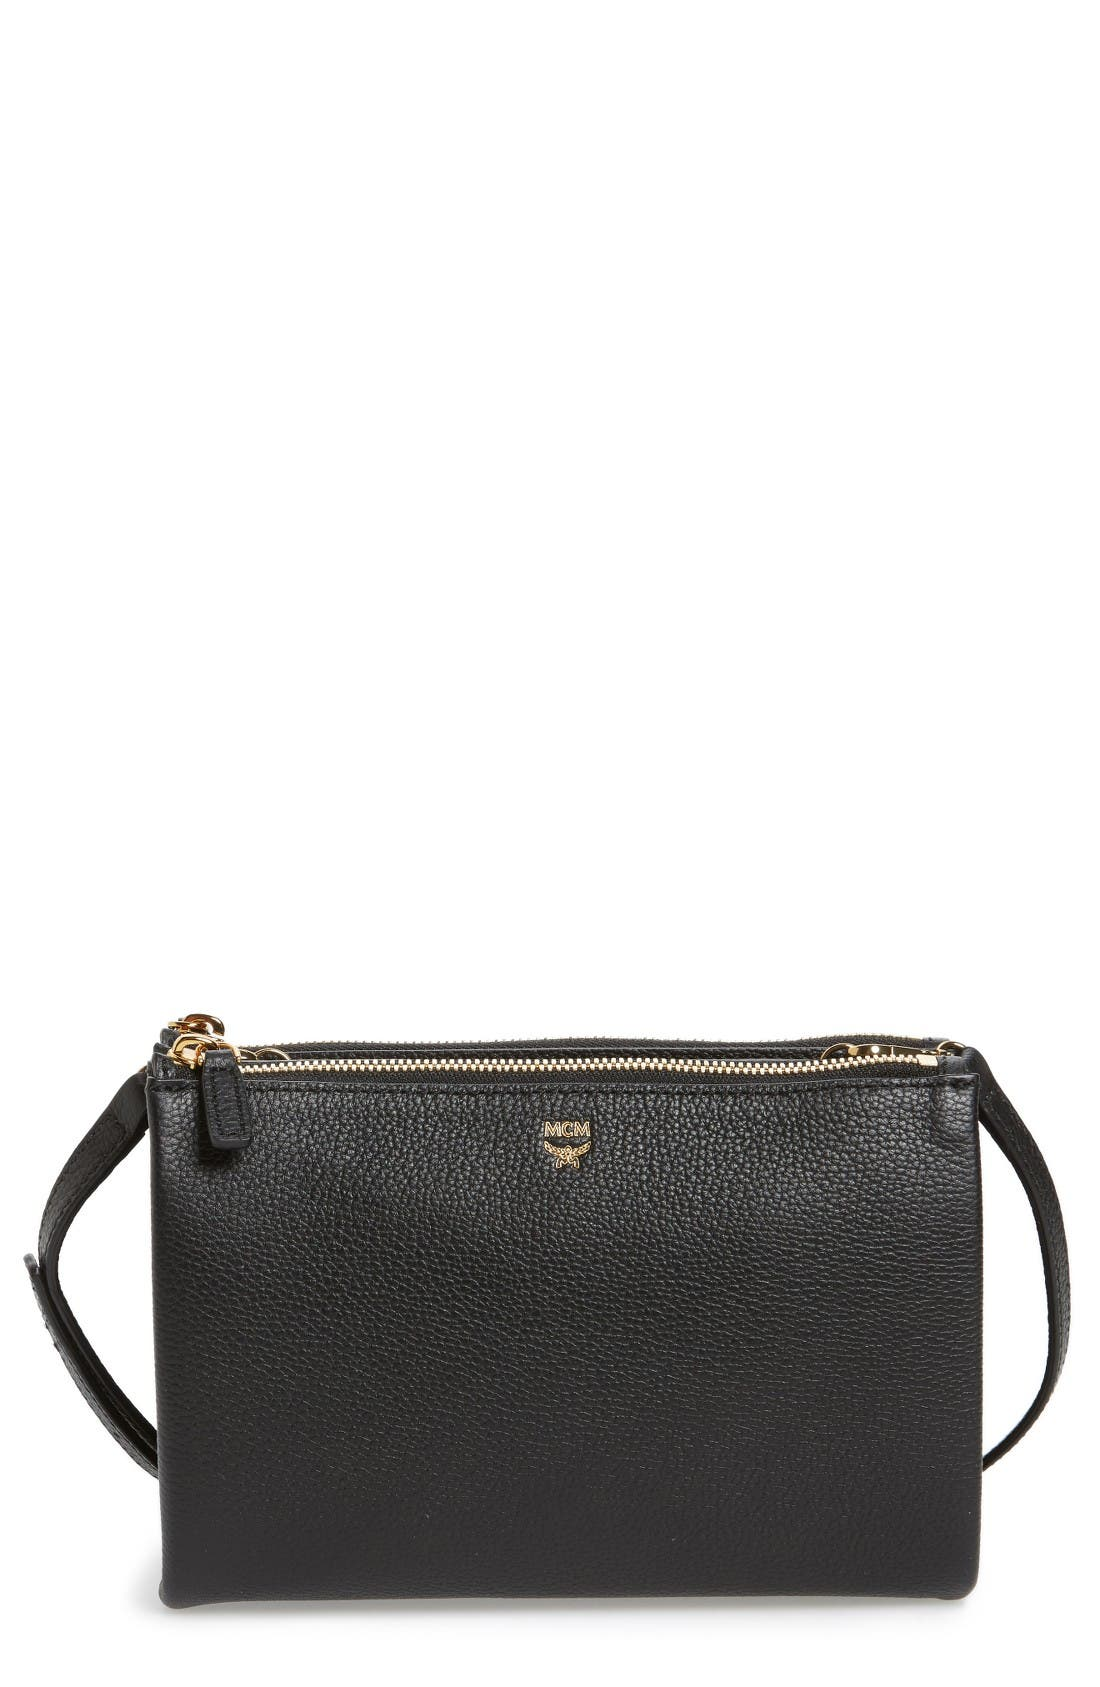 MCM Milla Double Leather Crossbody Bag